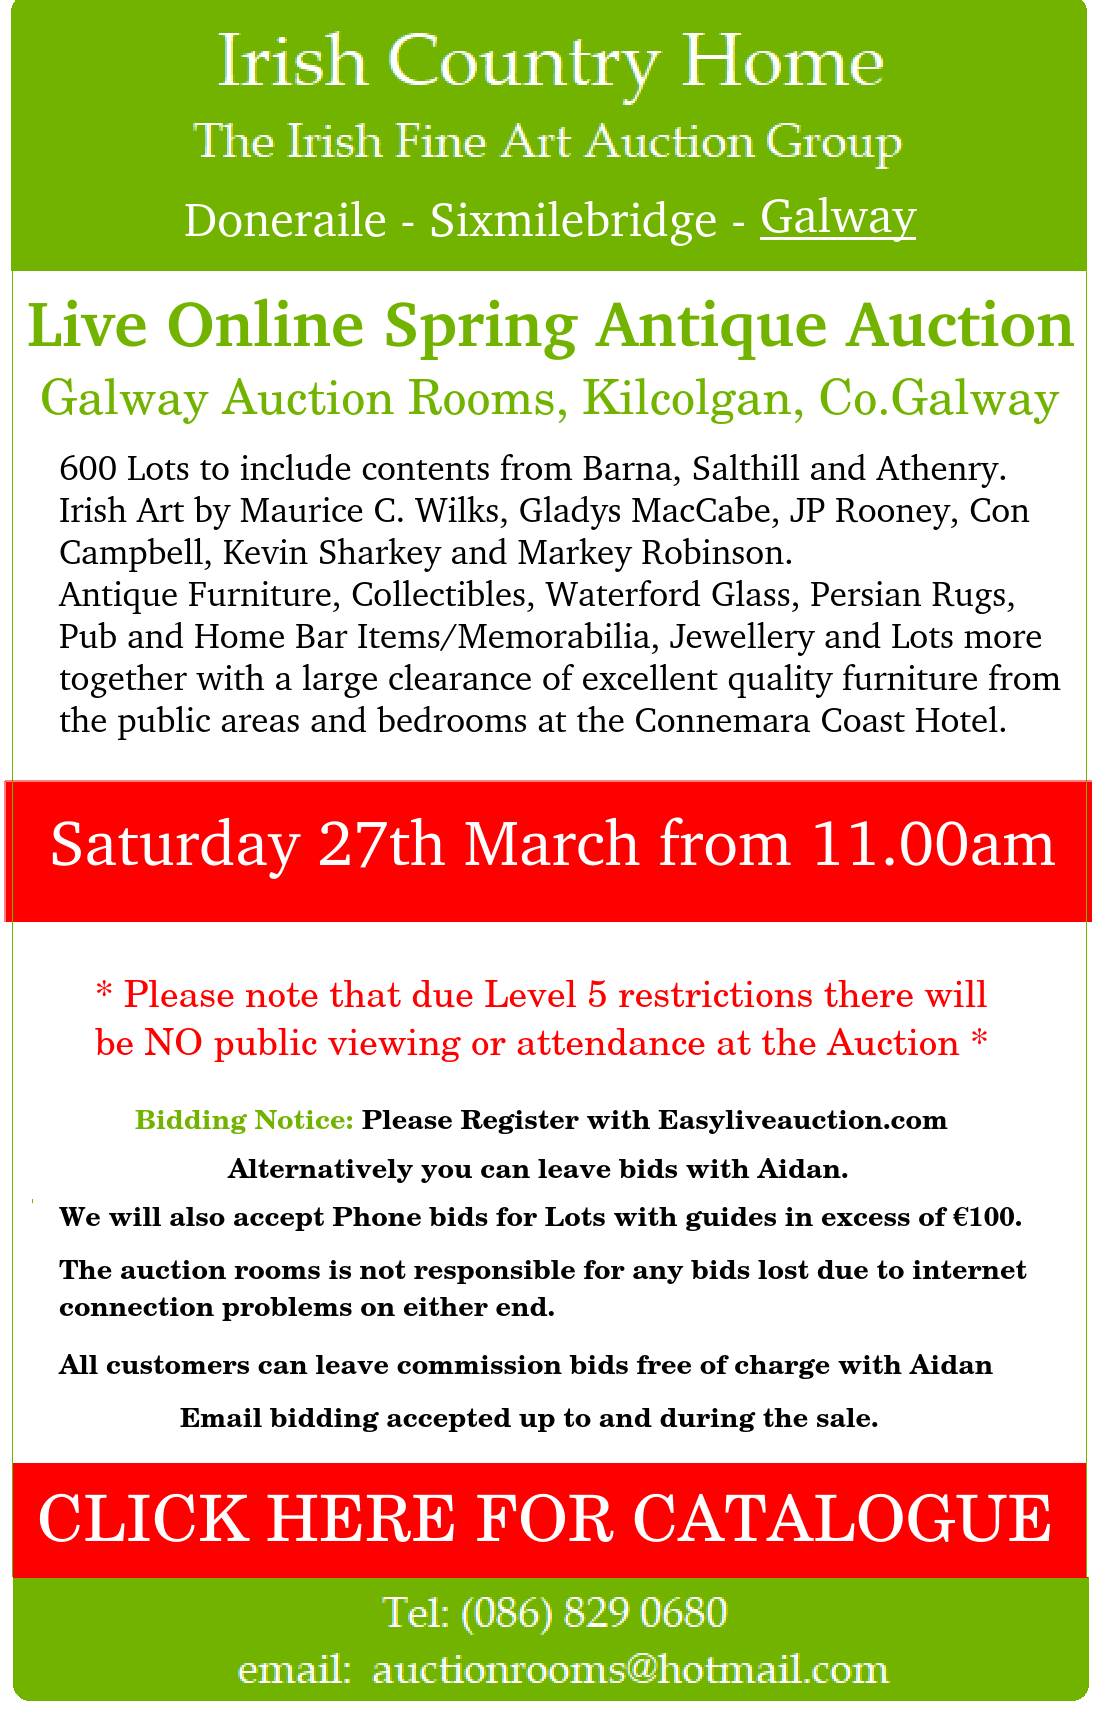 GALWAY 27th MARCH 2021 ONLINE SALE